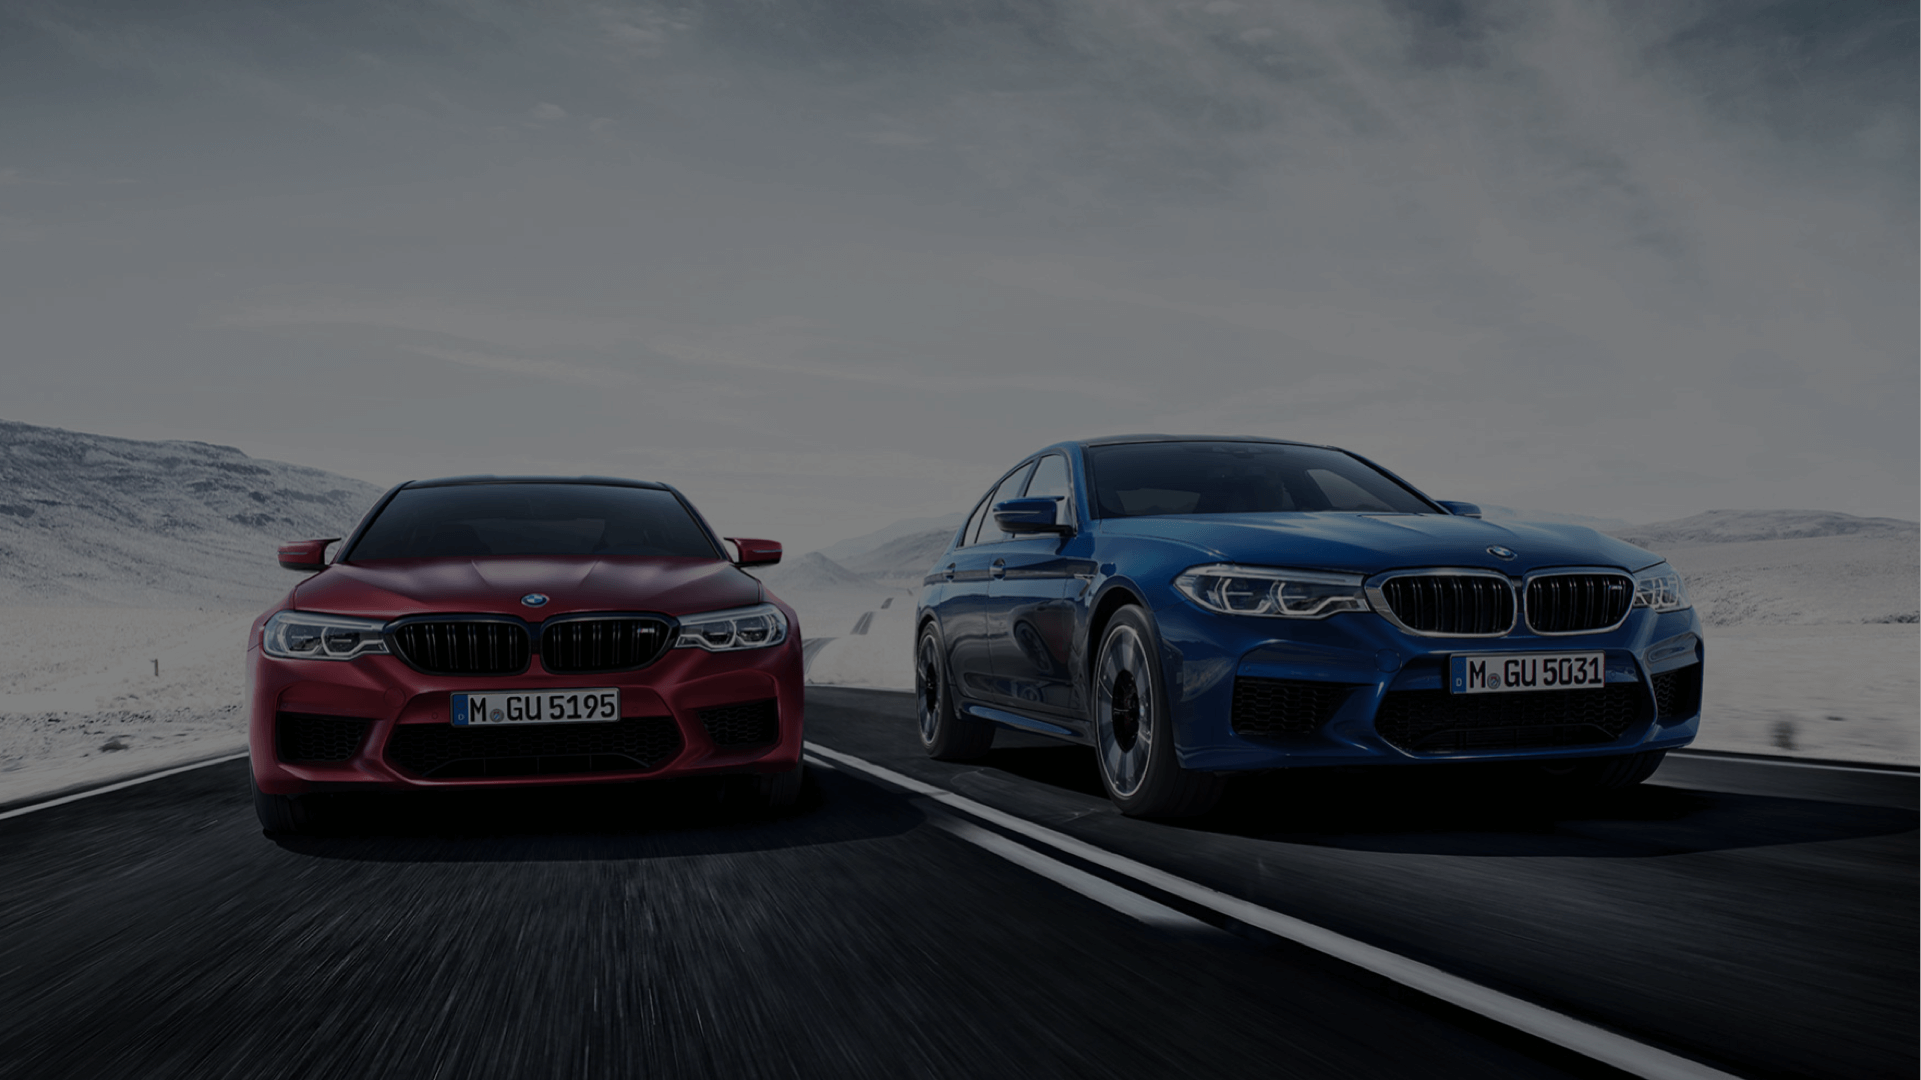 Exclusive Importer for BMW in Abu Dhabi & Al Ain